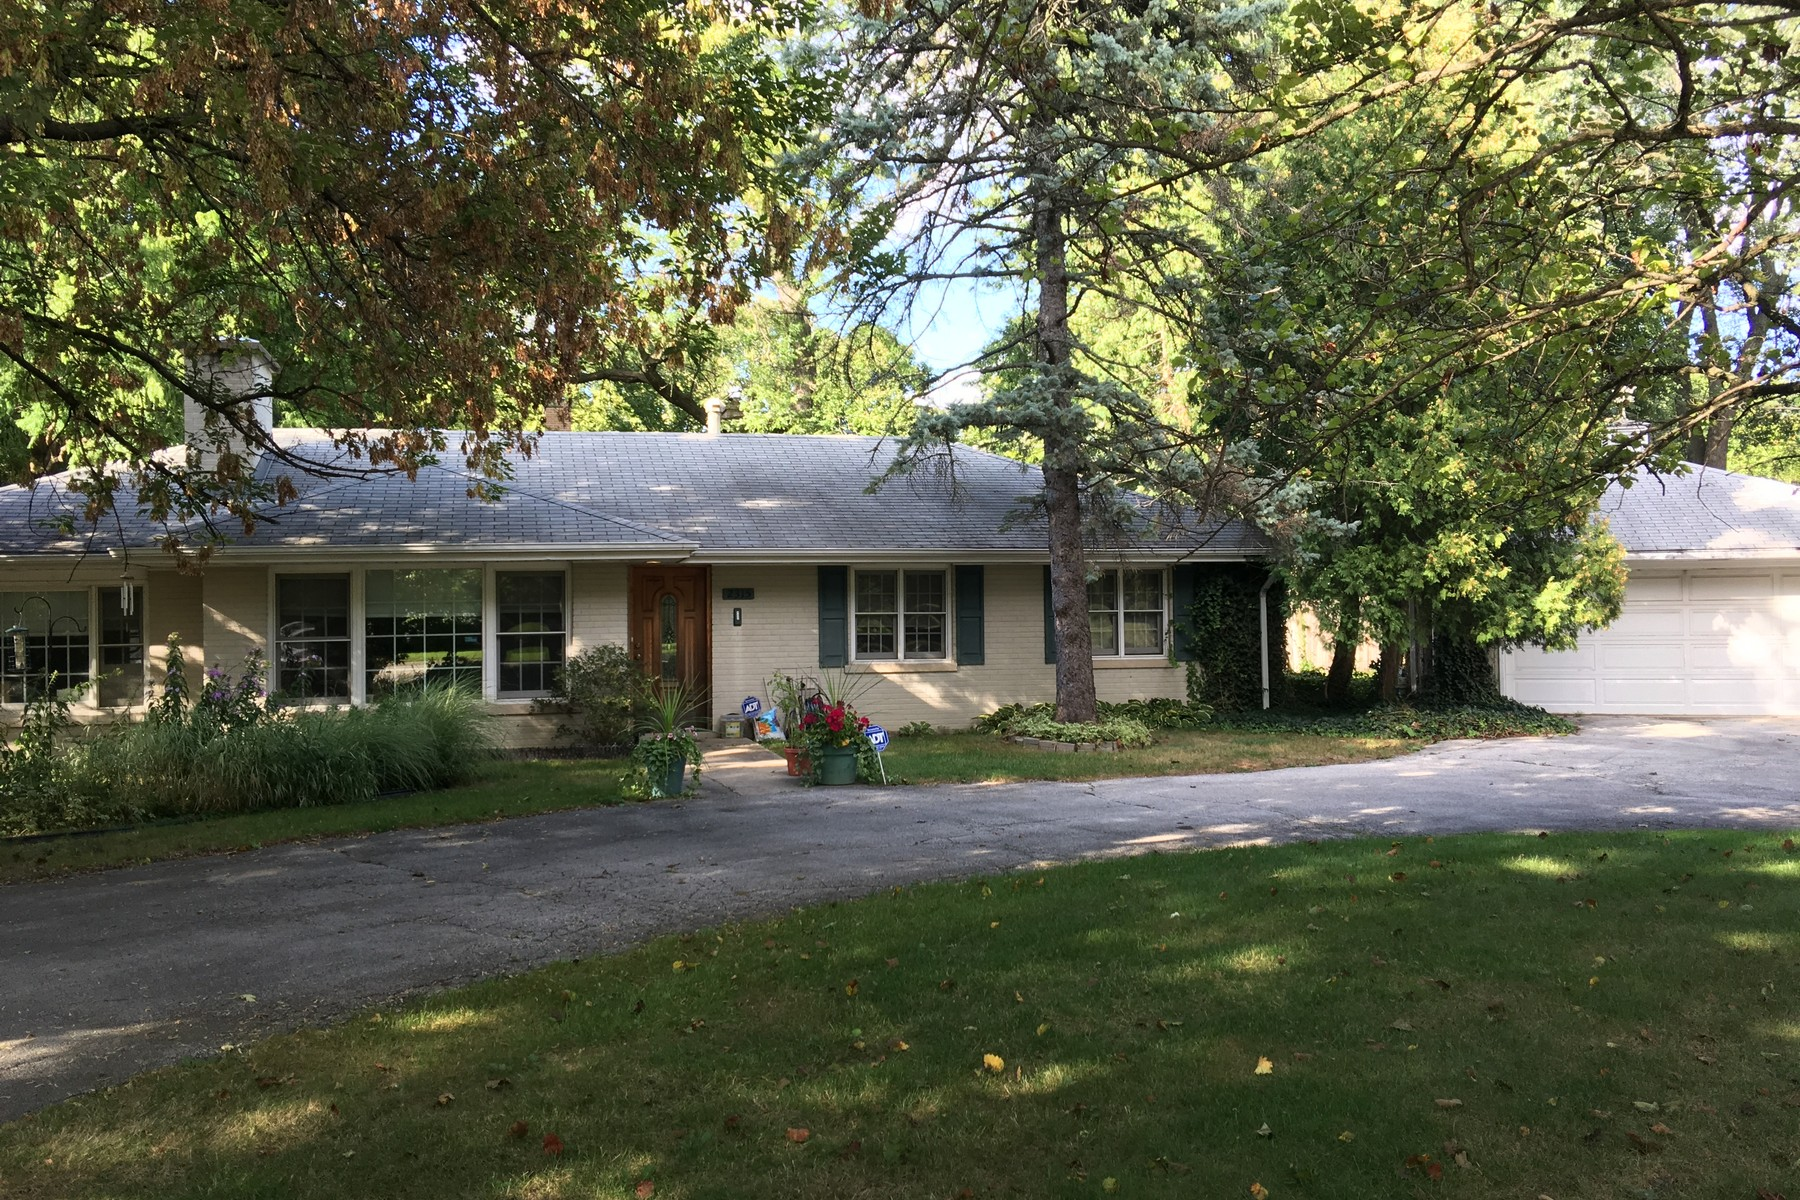 Maison unifamiliale pour l Vente à Delightful Three Bedroom Ranch Home 2315 Mccormick Boulevard Evanston, Illinois, 60201 États-Unis